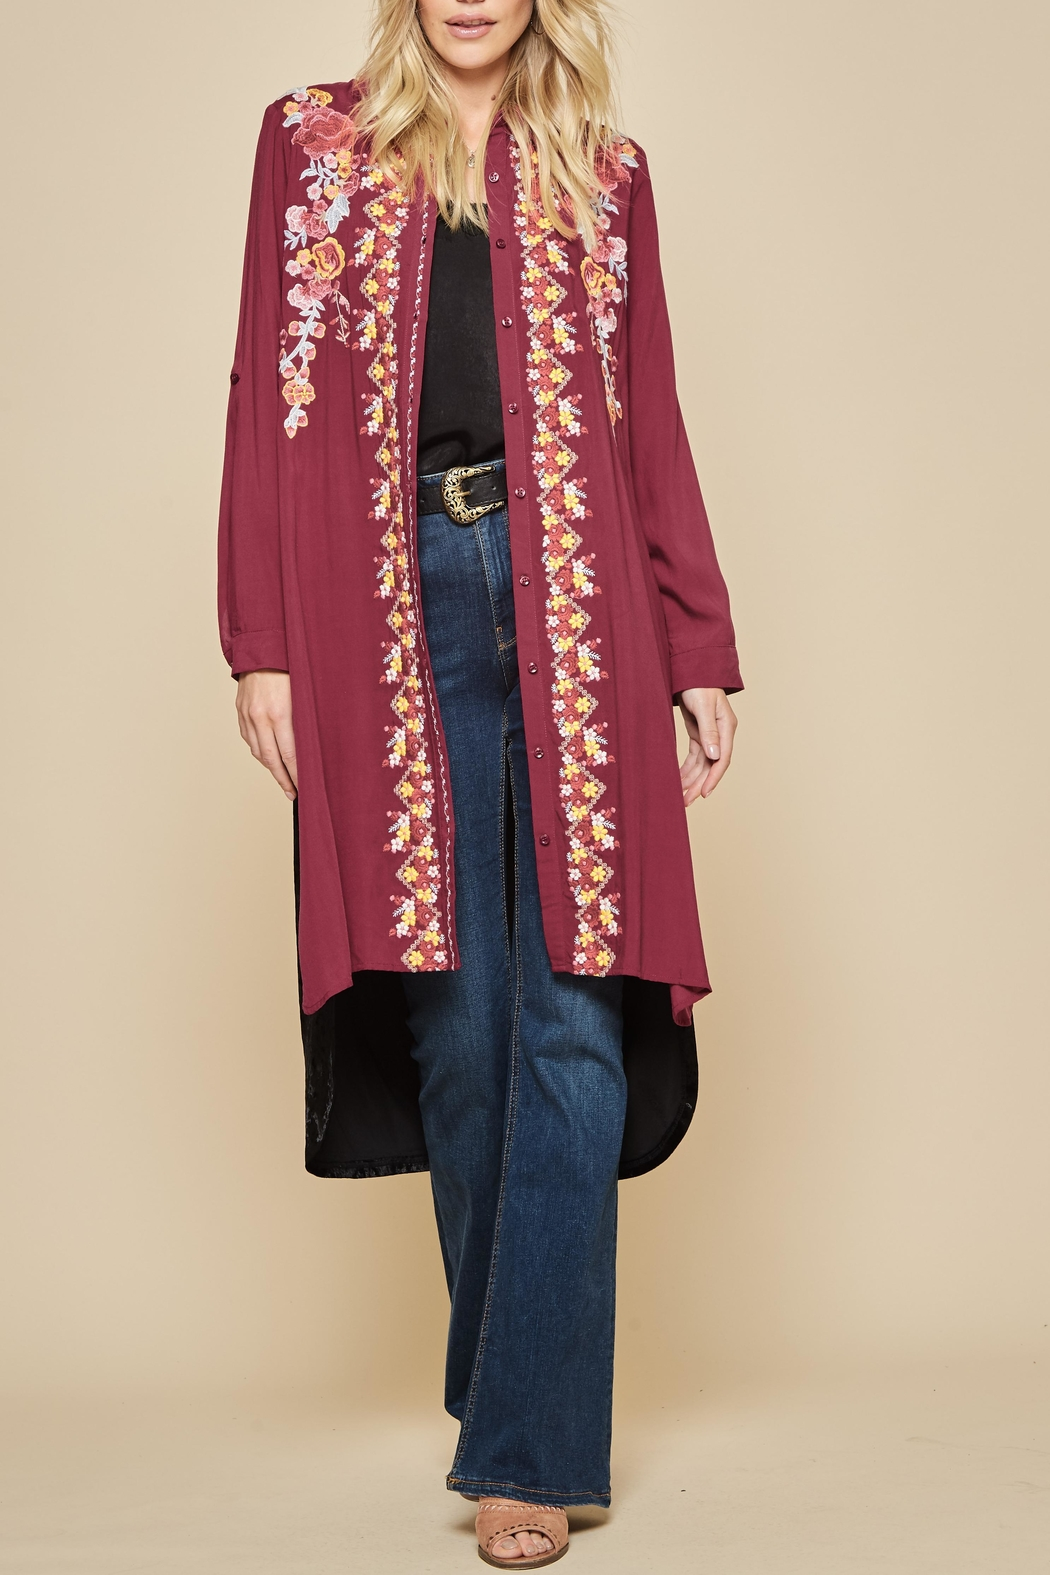 Vintage Coats & Jackets | Retro Coats and Jackets Embroidered Velvet Duster $46.00 AT vintagedancer.com